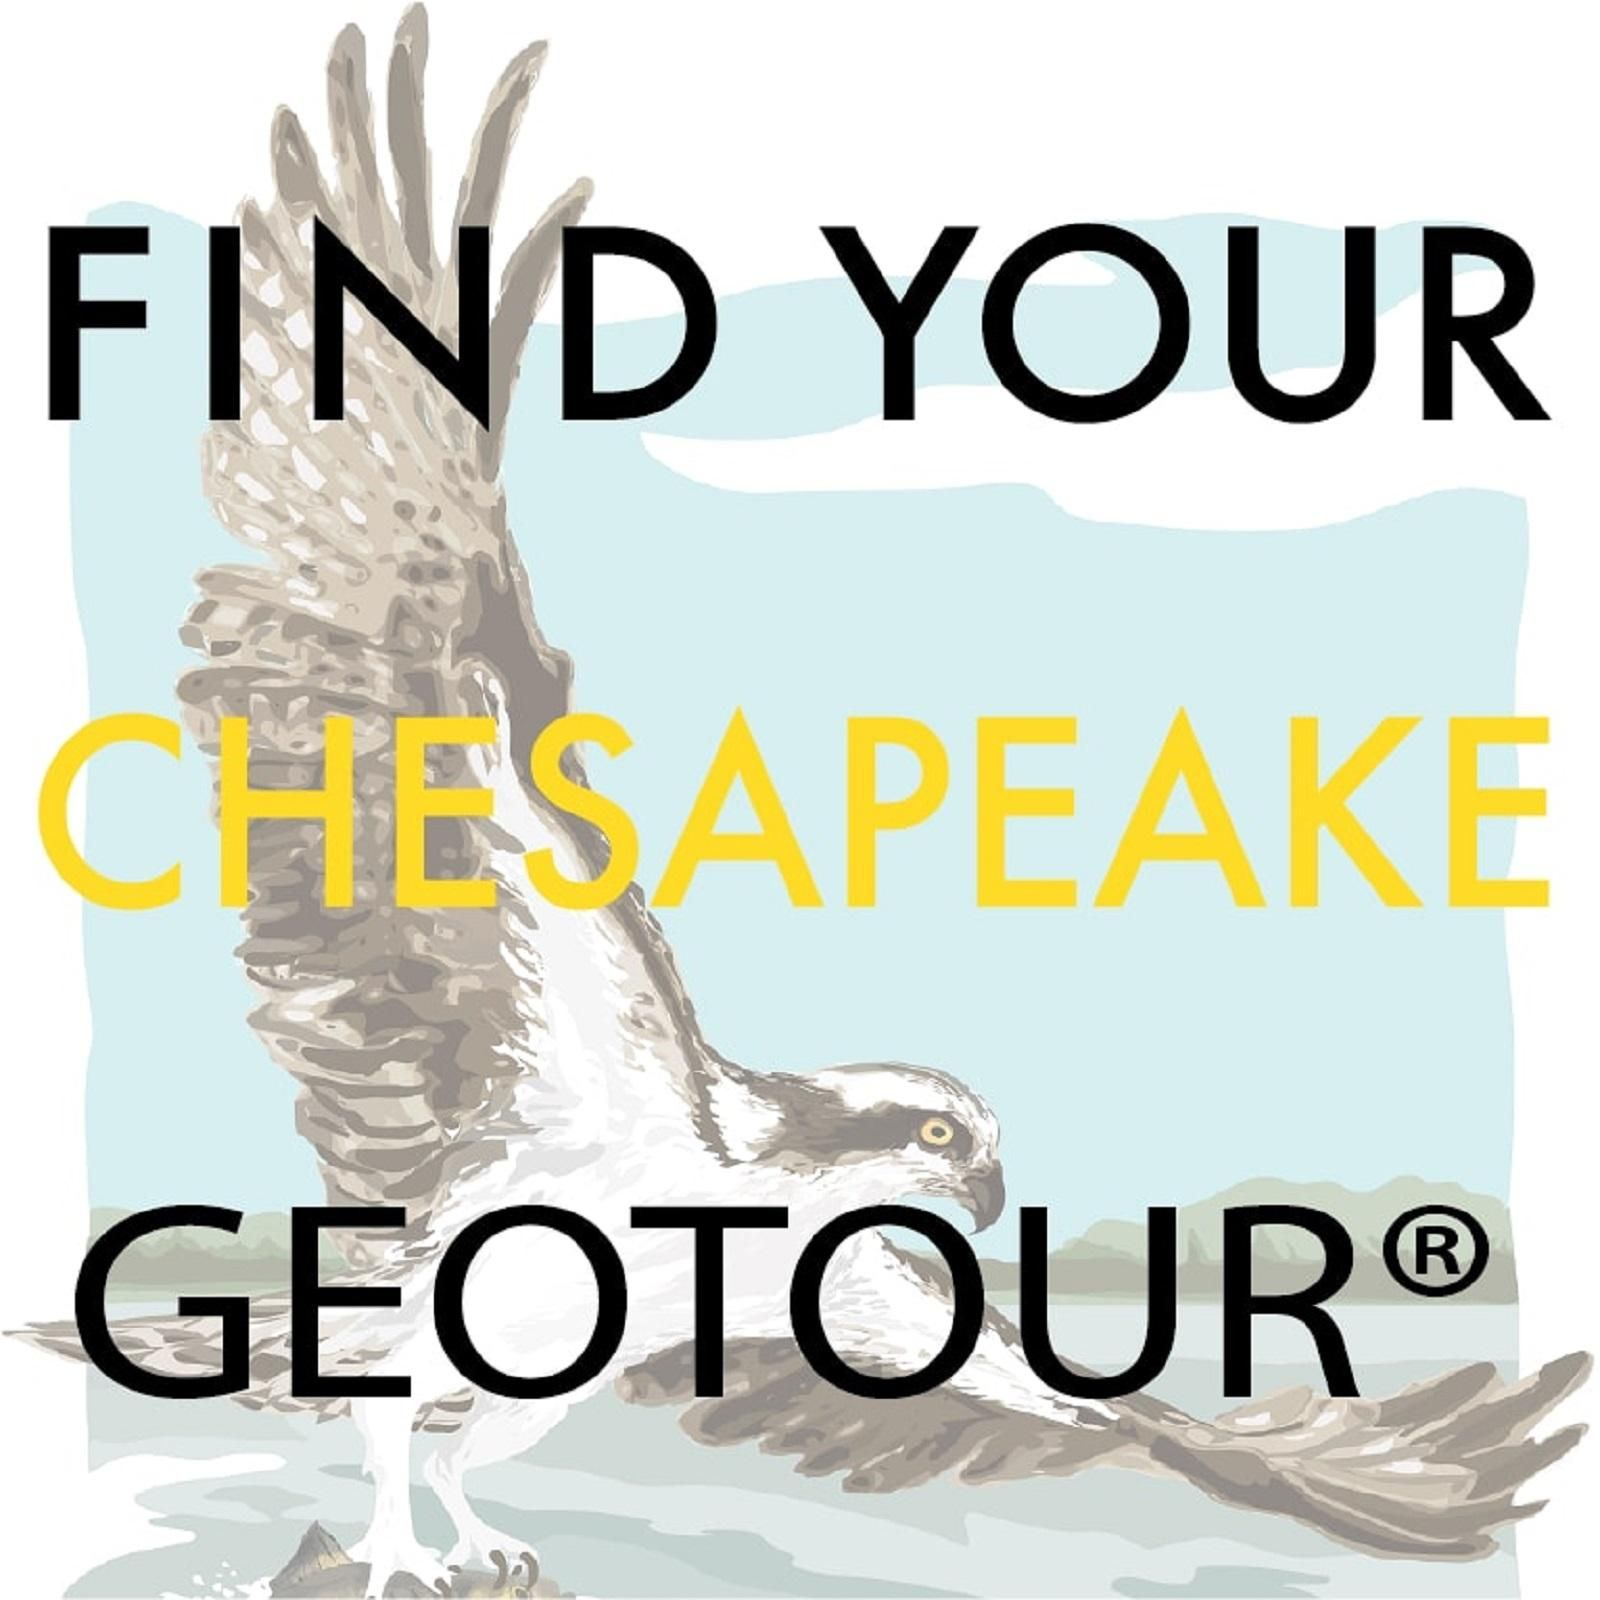 Pohick Bay Regional Park Find Your Chesapeake National